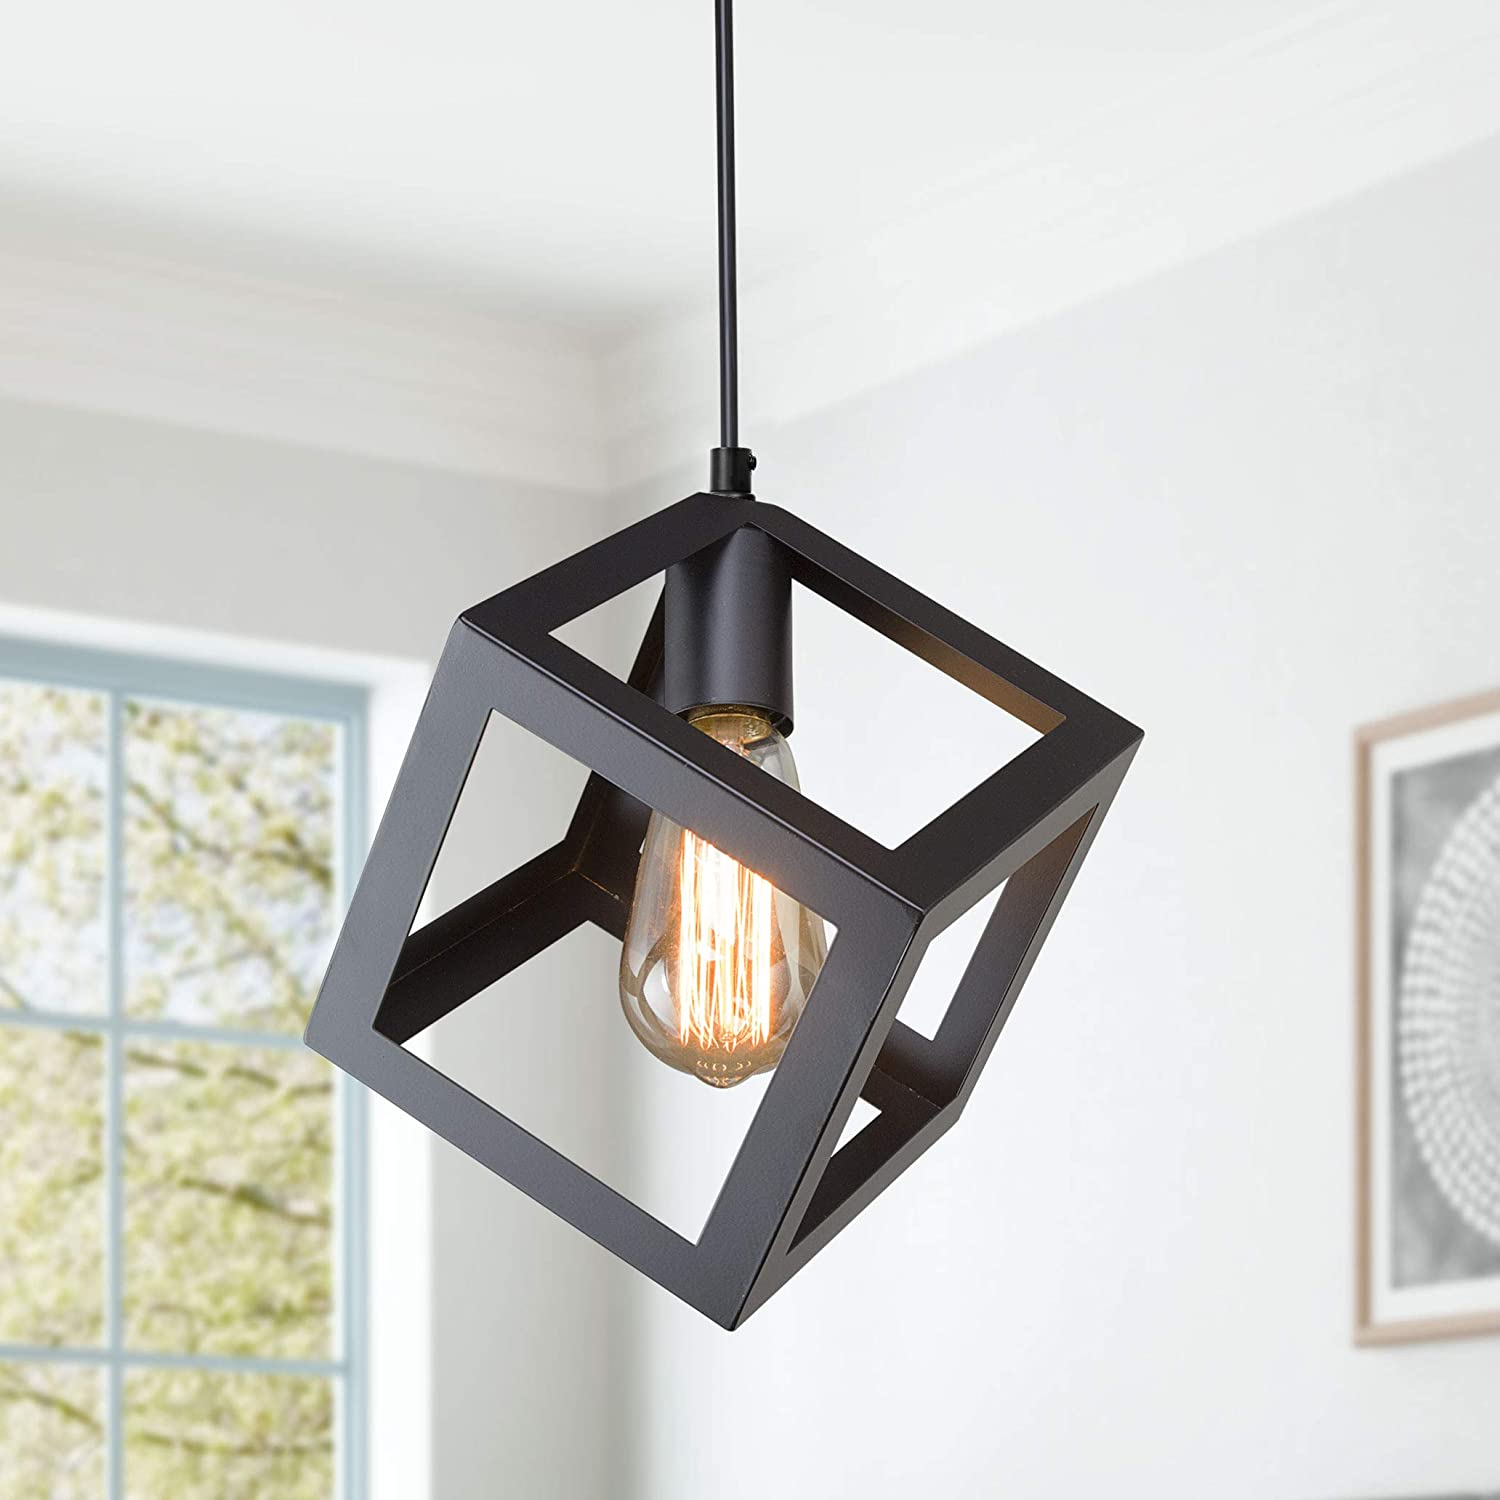 Lnc pendant lighting for kitchen island modern square hanging fixture with black oil finish a01974